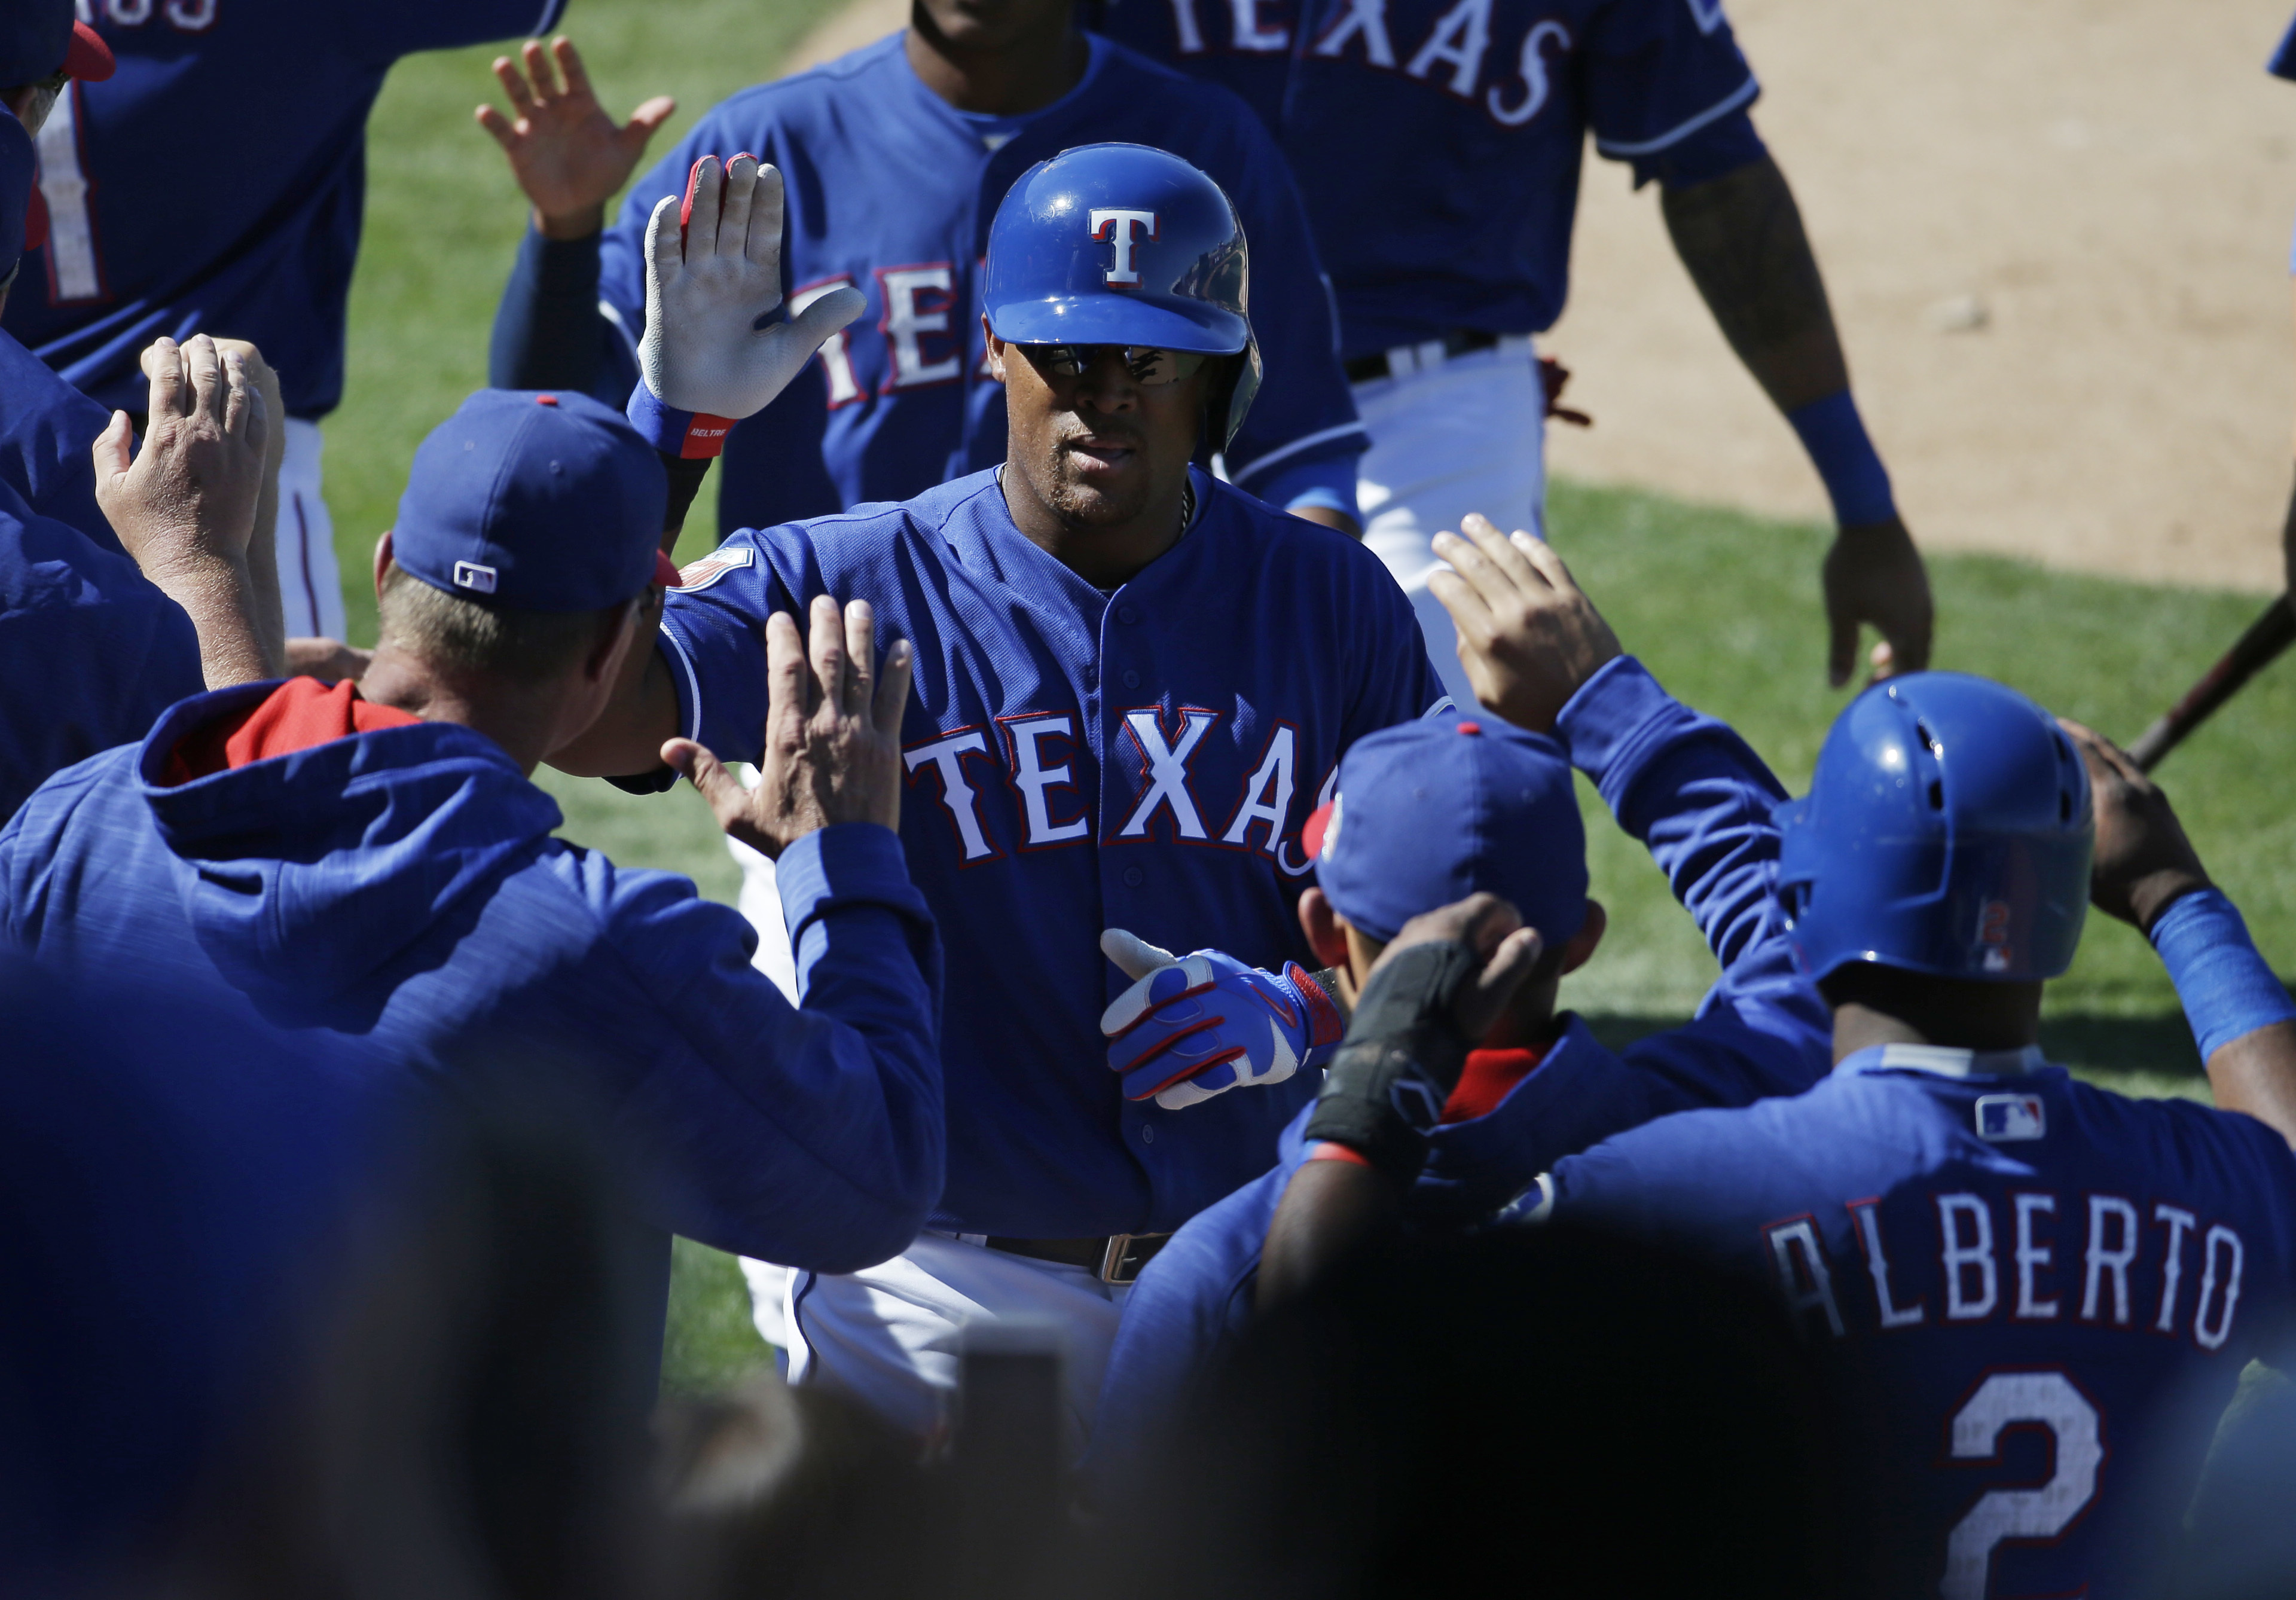 Texas Rangers' Adrian Beltre, center, celebrates with teammates after hitting a three-run home run inning of a spring training baseball game against the Oakland Athletics on Saturday, March 12, 2016, in Surprise, Ariz. (AP Photo/Darron Cummings)